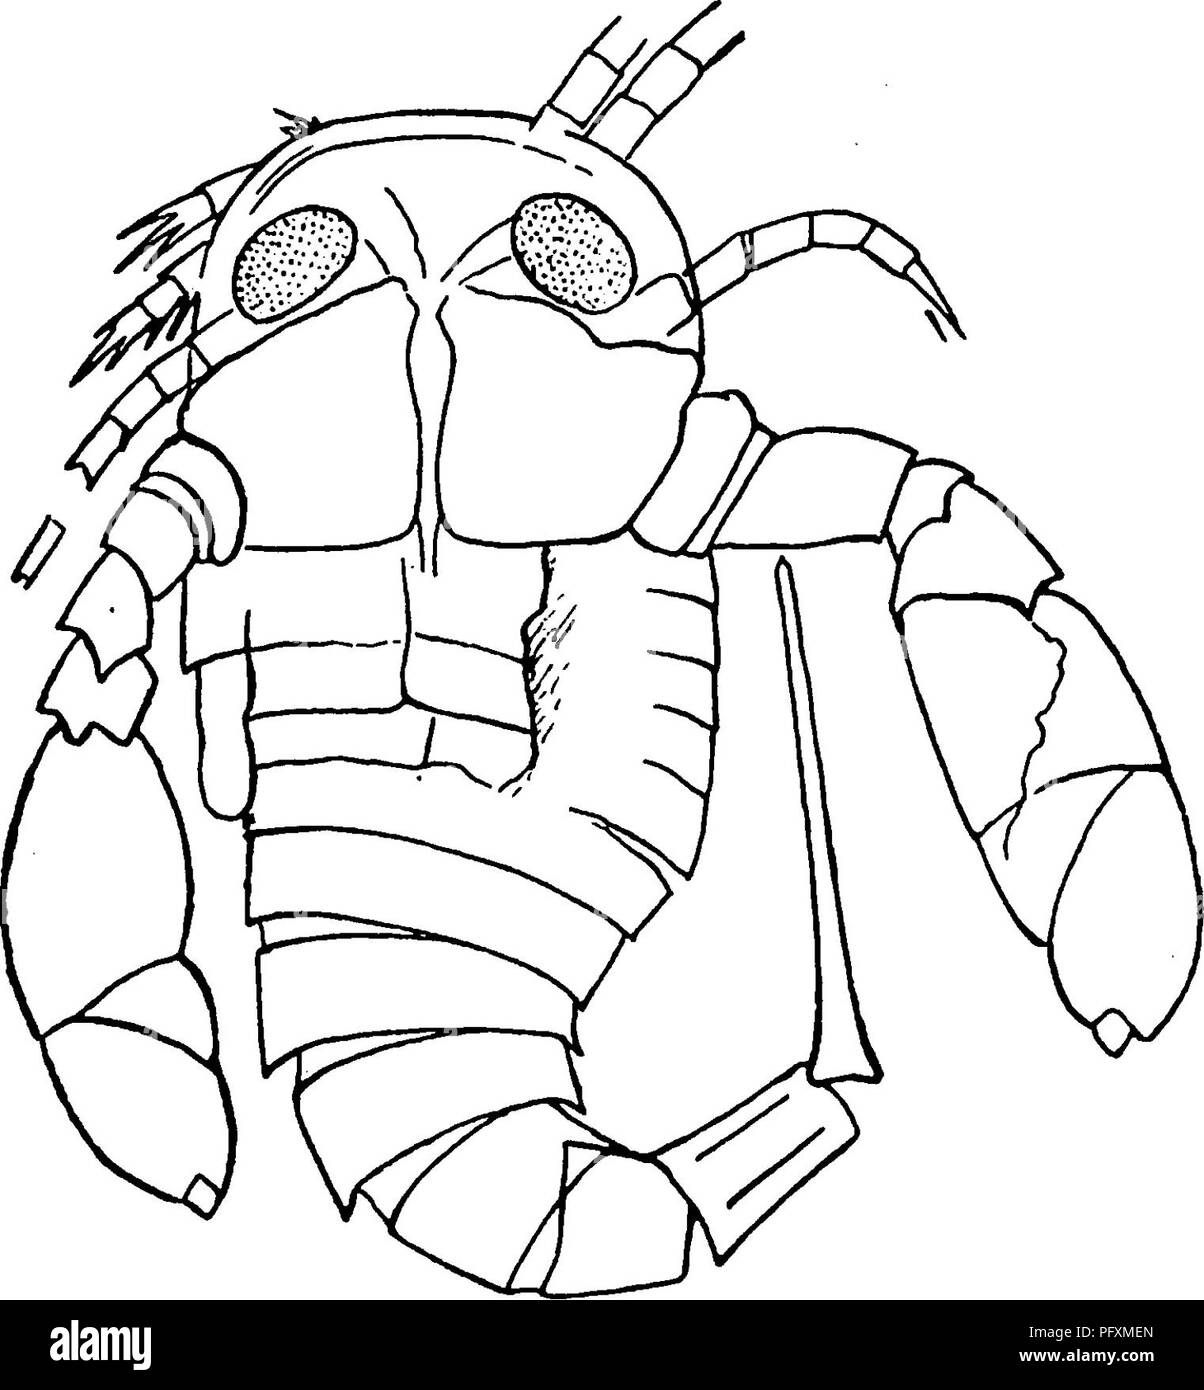 the eurypterida of new york eurypterida paleontology figure 2 z 2 X 3 Design figure 2 z outline camera drawing of young of eurypterus remipes x3 the same specimen is reproduced on plate 4 figure i